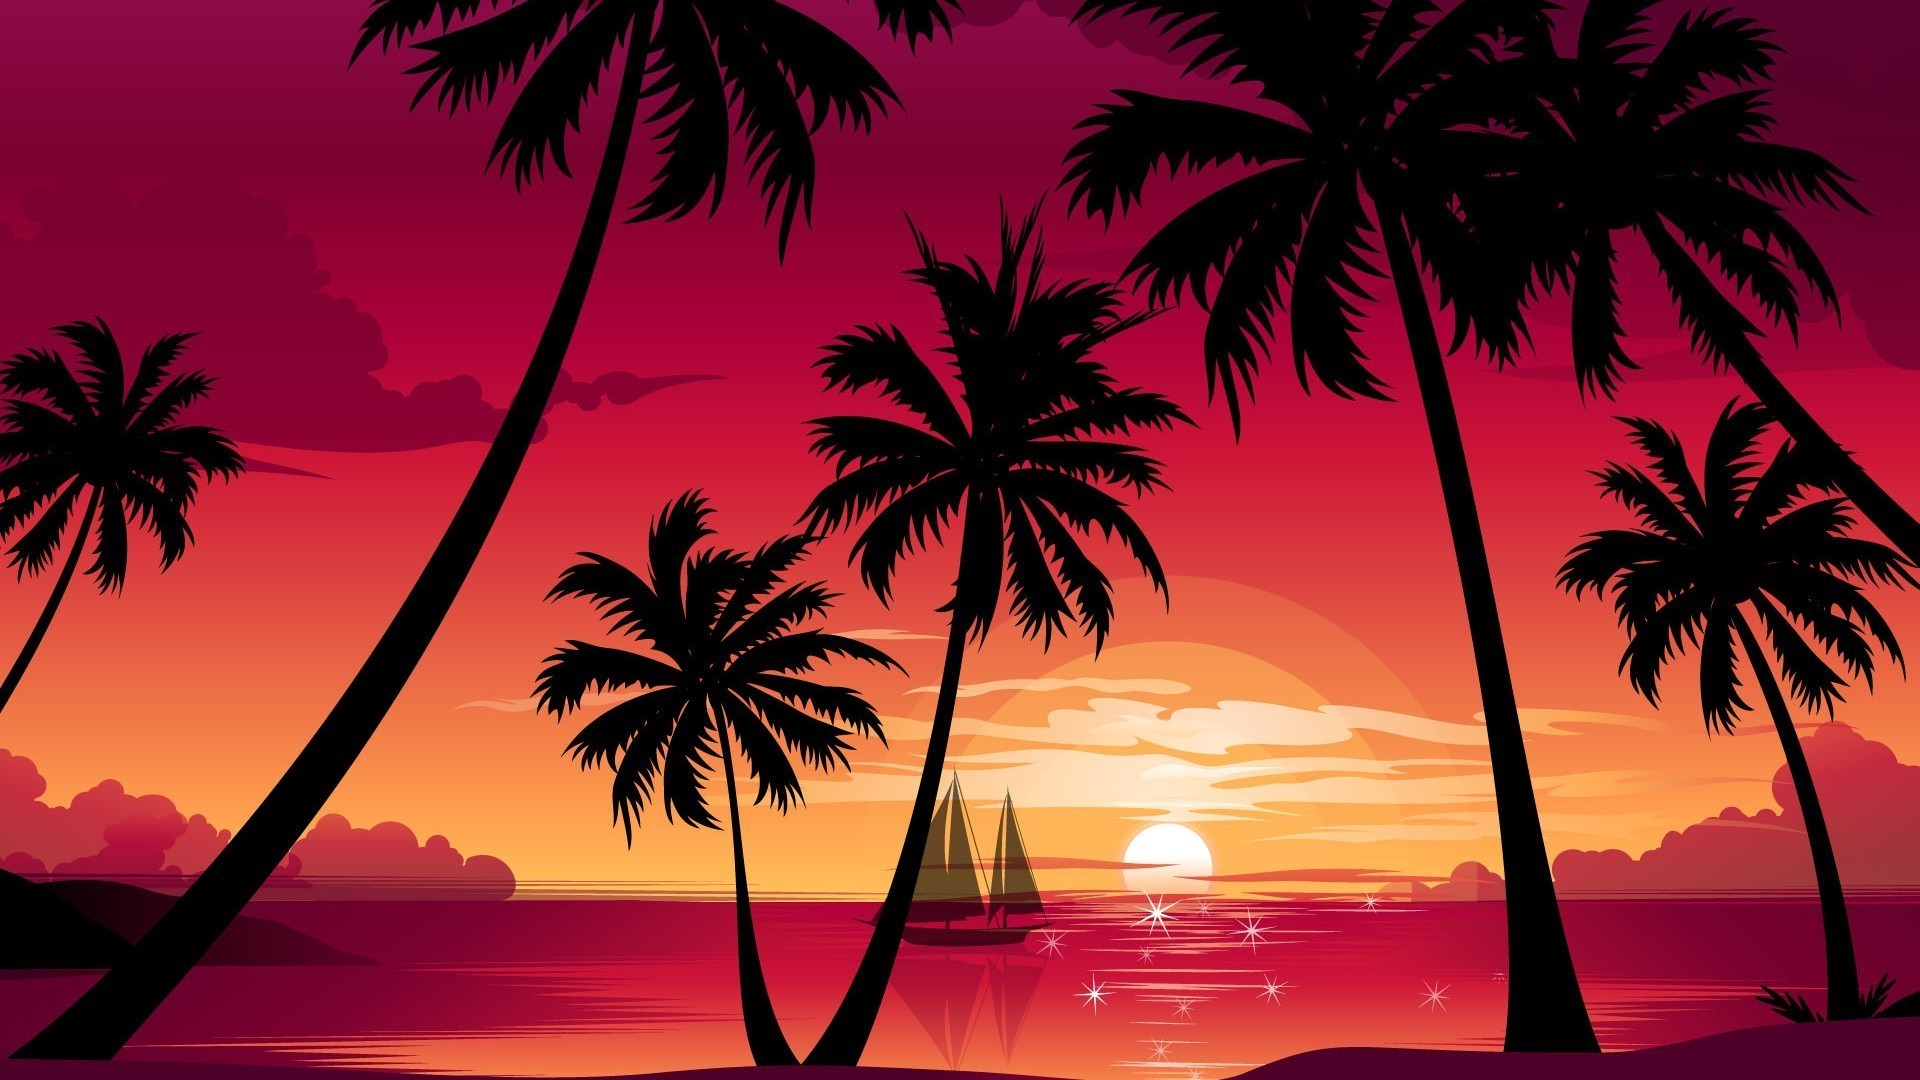 Palm trees,sunset,sailboat